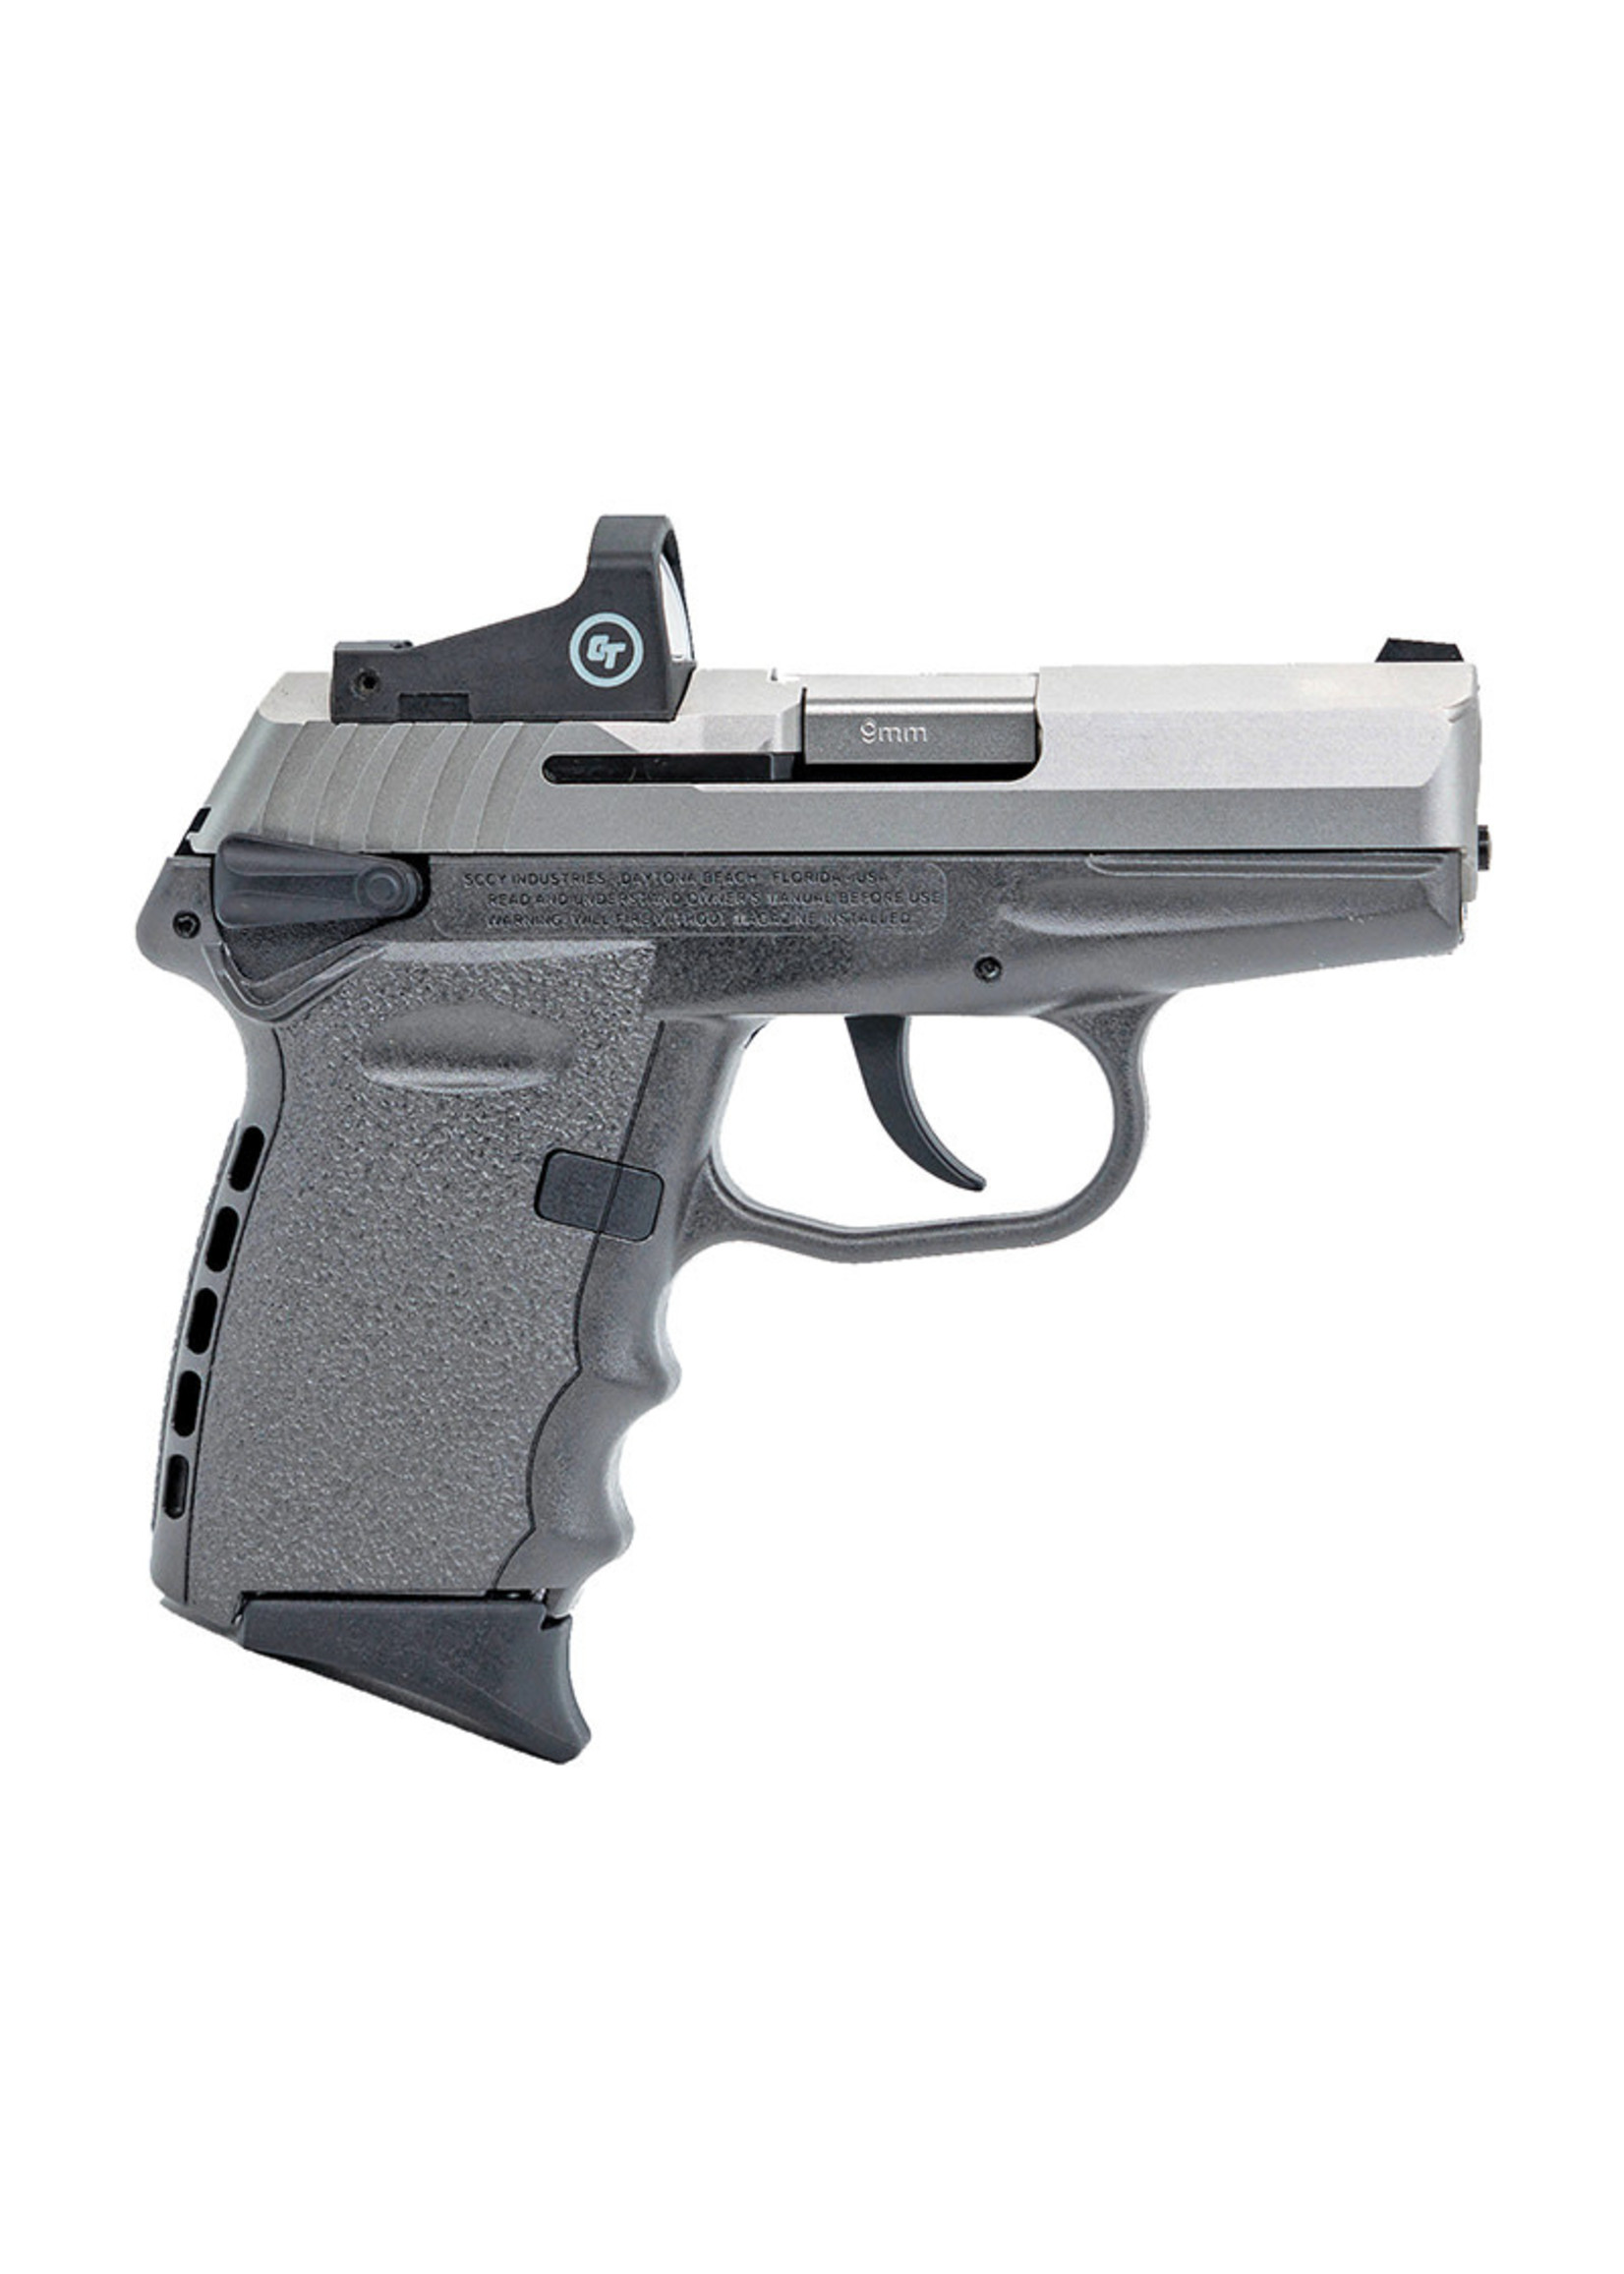 """Sccy Sccy Industries - CPX-1, 9mm, 3.1"""" Barrel, Red Dot Sight, Stainless/Gray, (2) 10-rd Mags"""